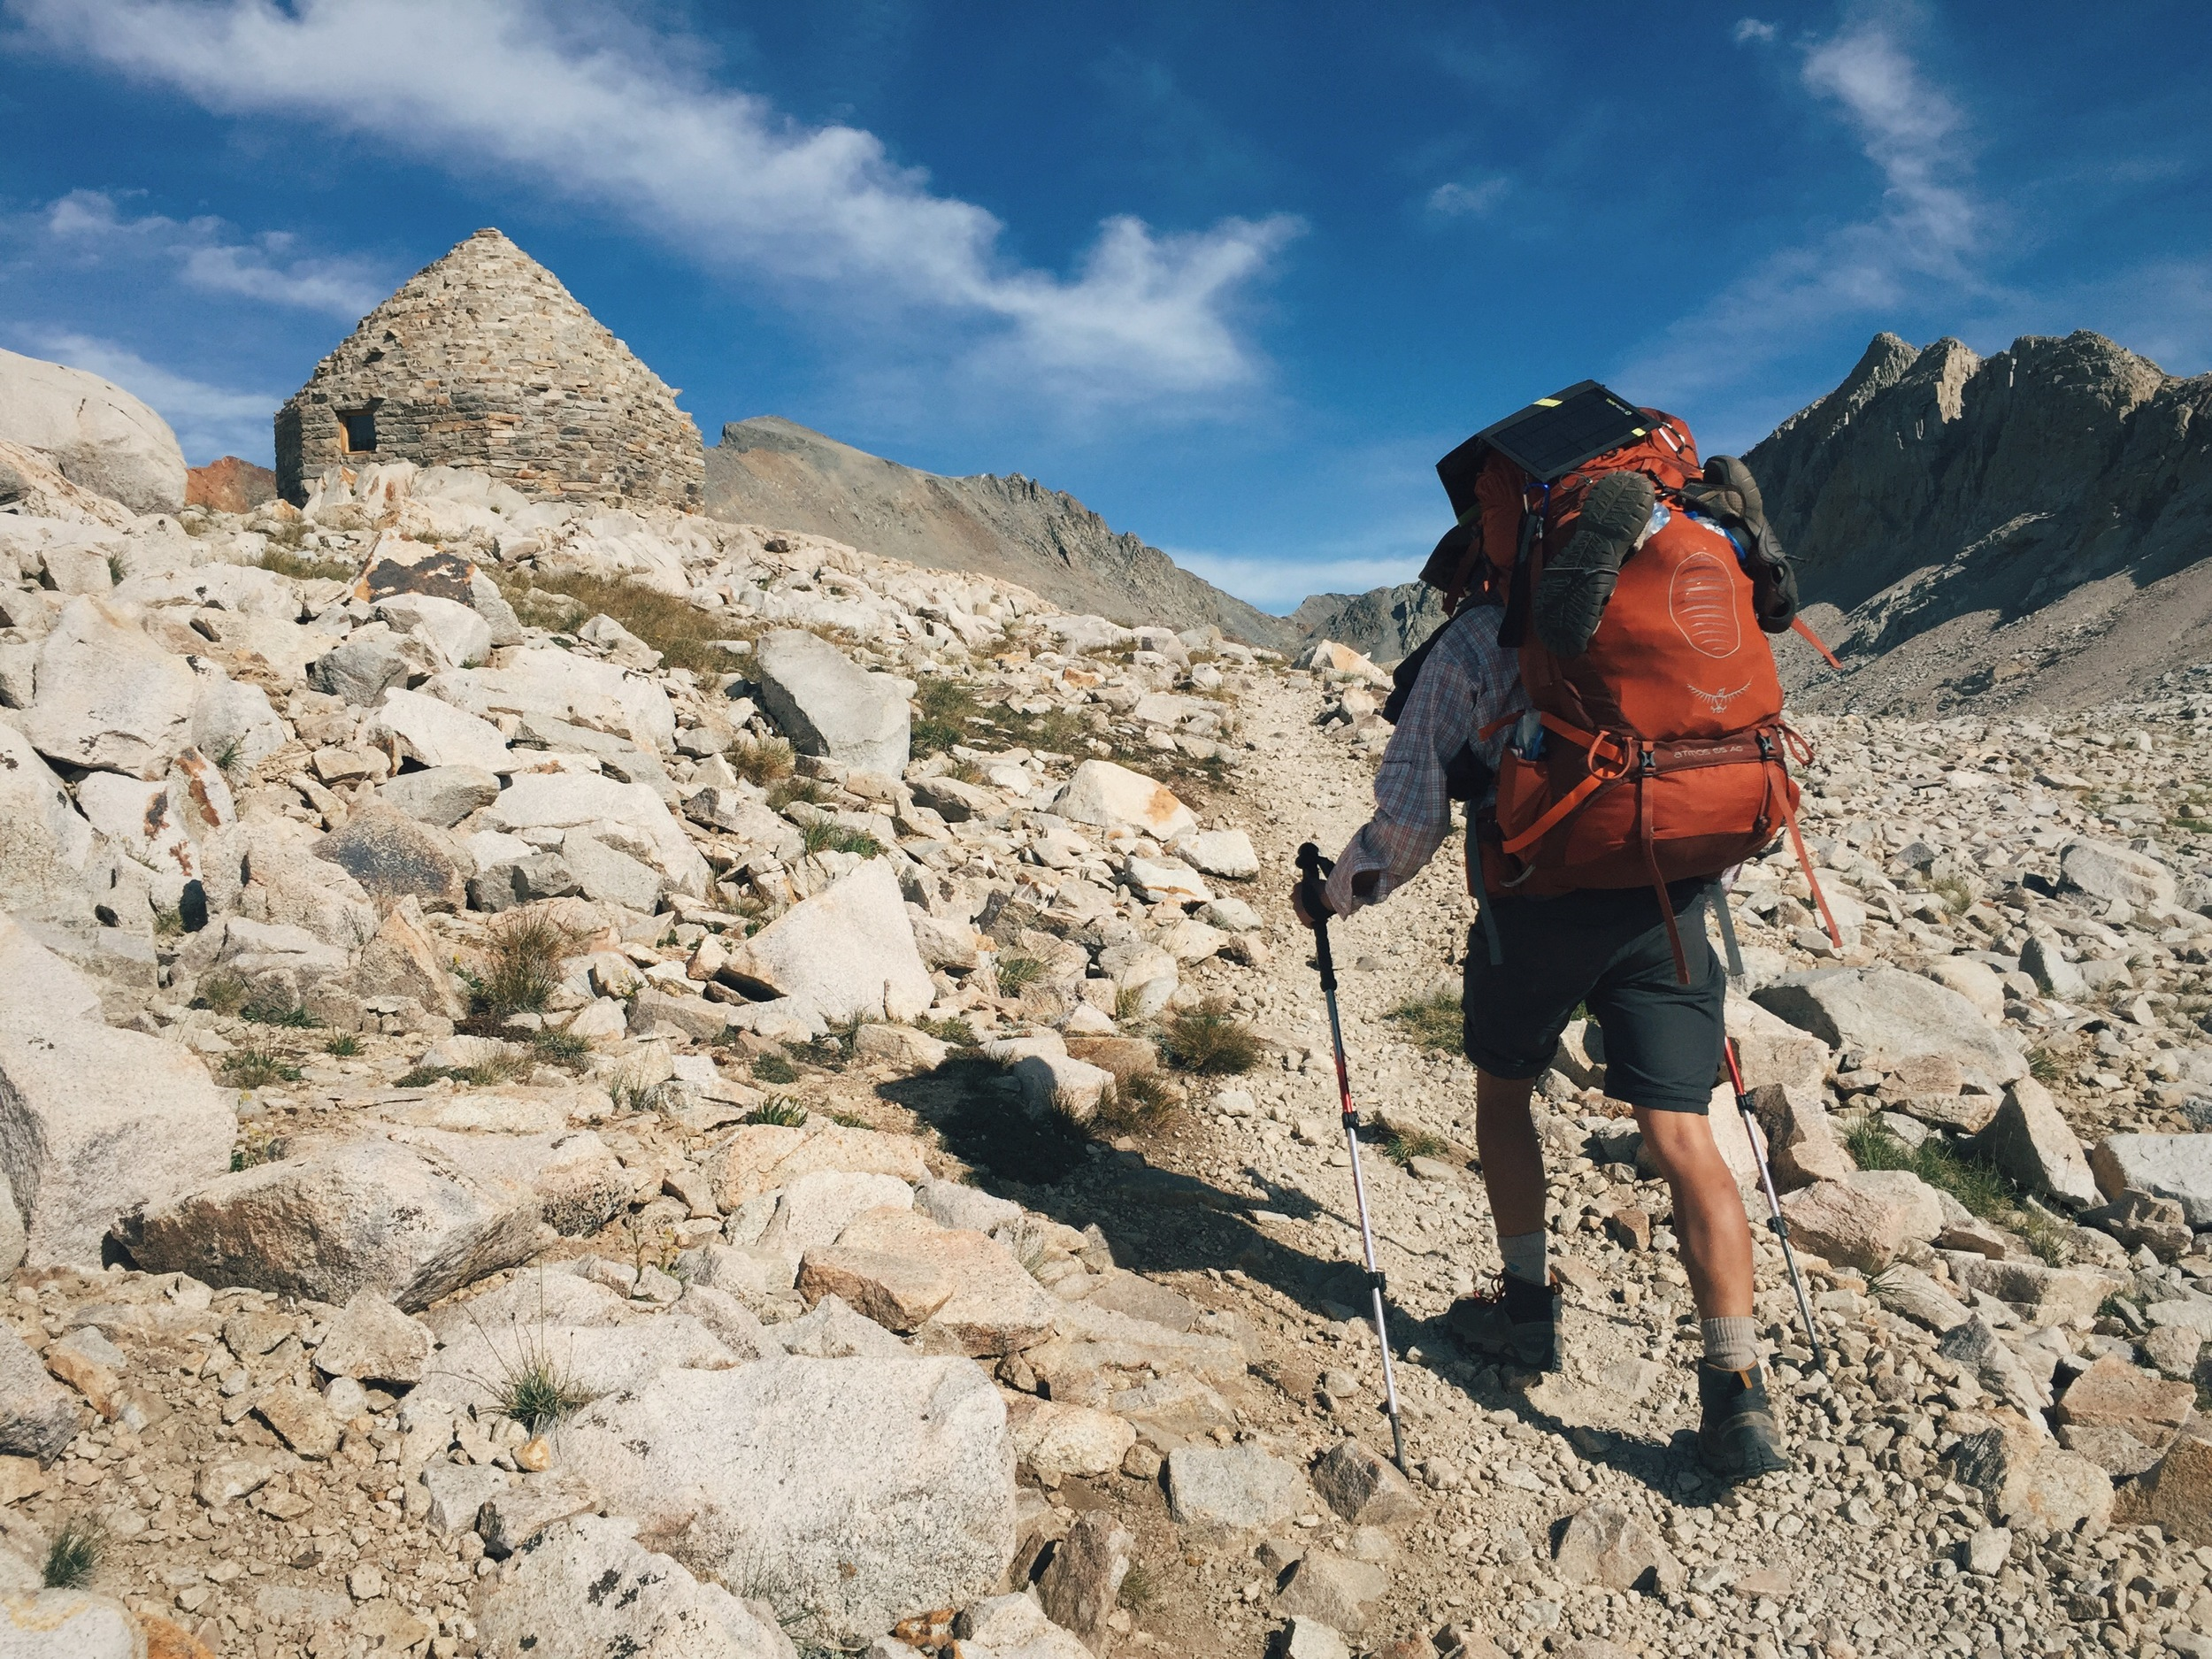 Taking the last few steps up to Muir Pass (11,955').